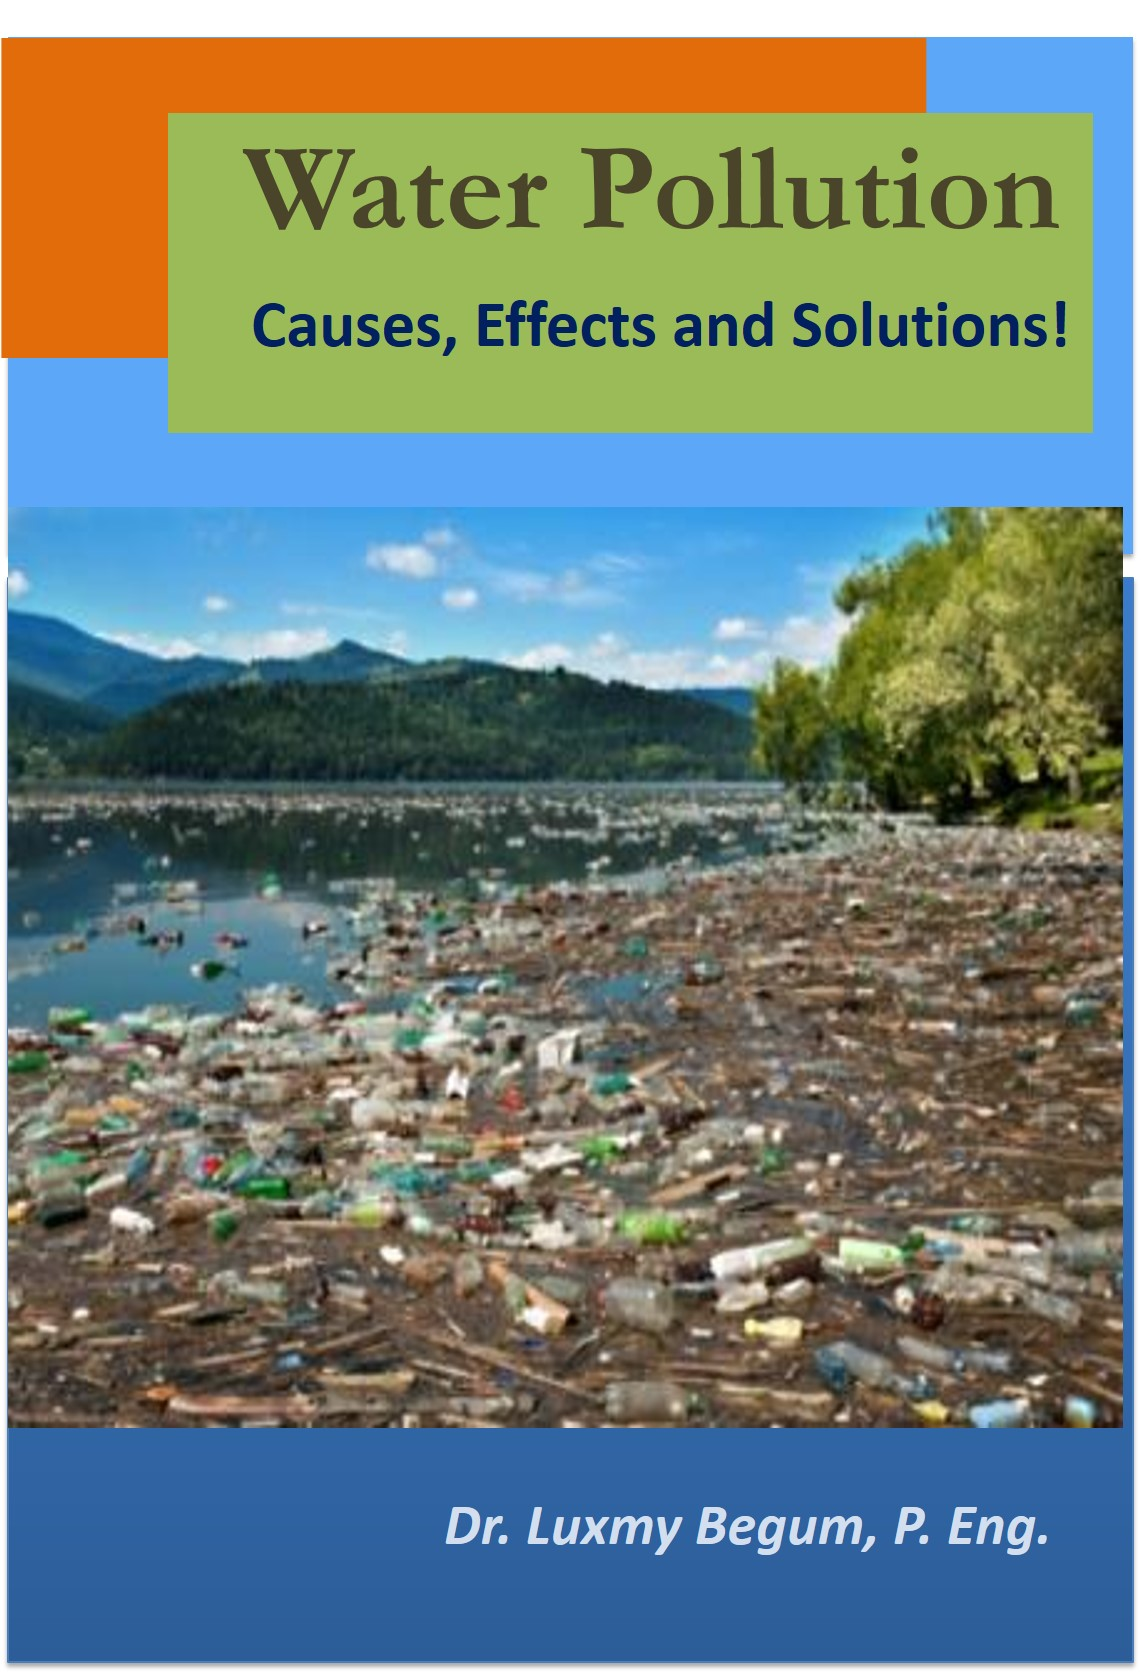 water pollution references comprehensive summary of water pollution causes effects and facts cdn 5 99